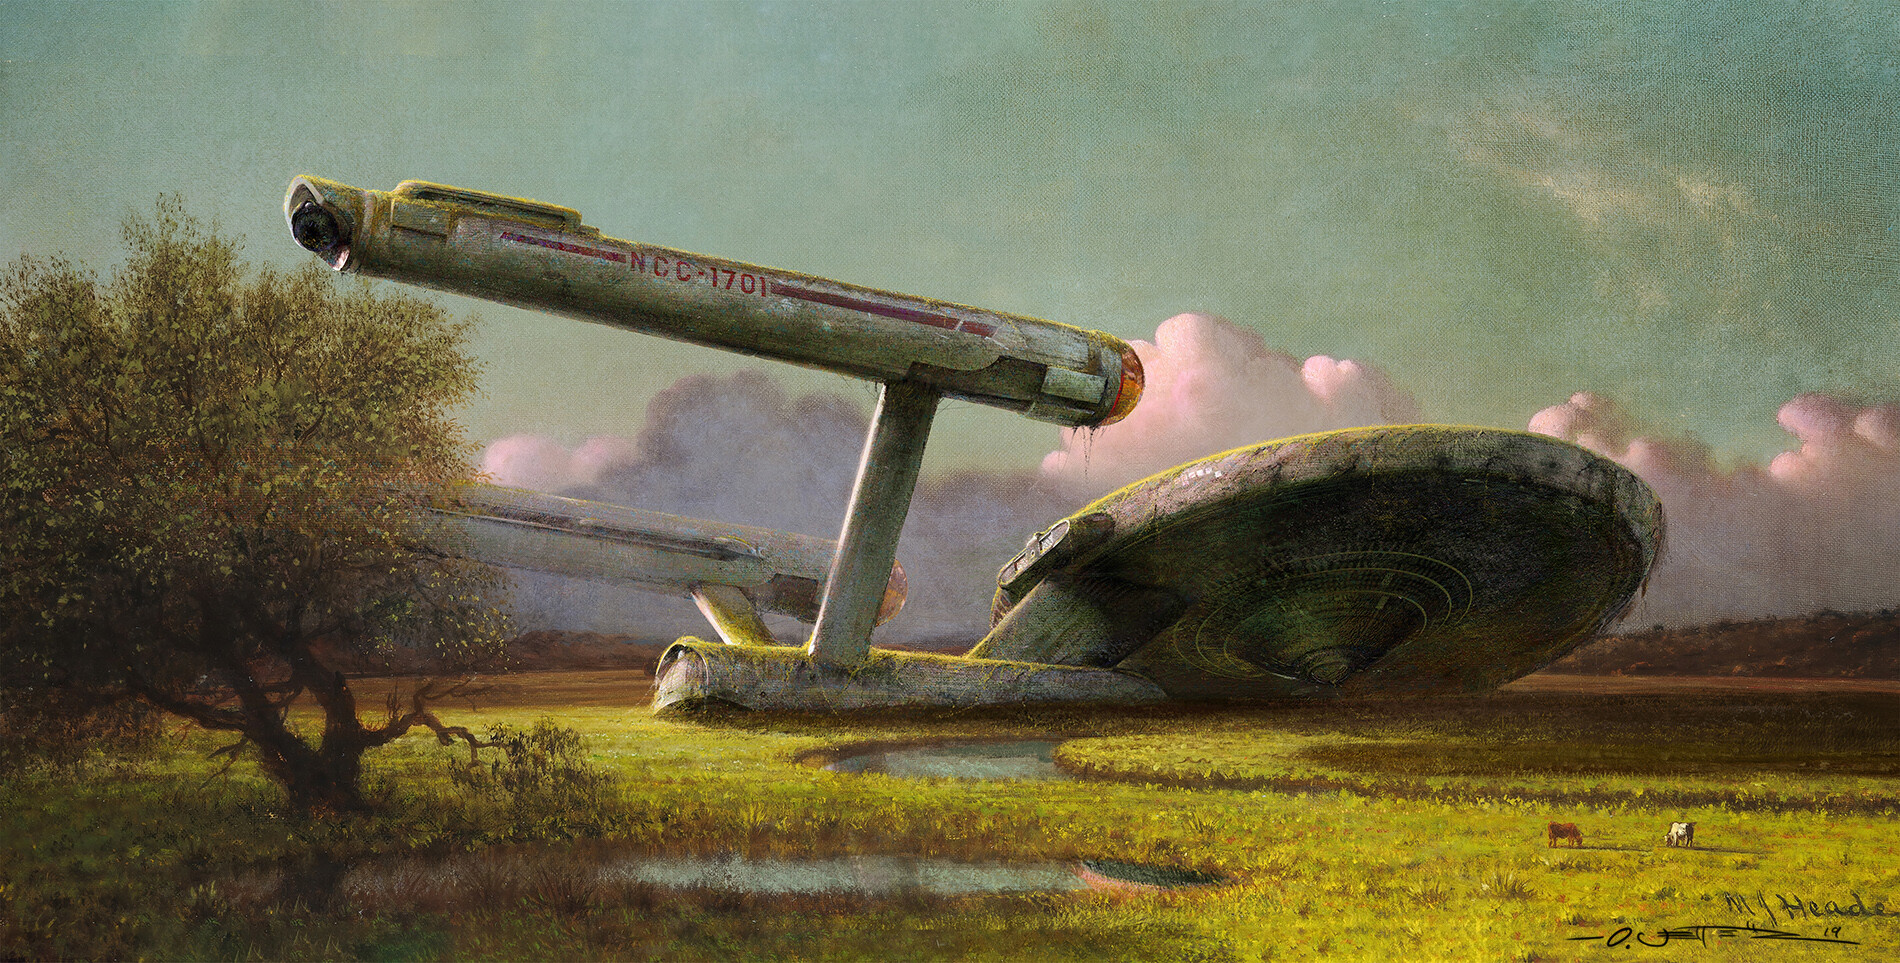 Forgotten NCC-1701 at the Meadow - after M.J. Heade